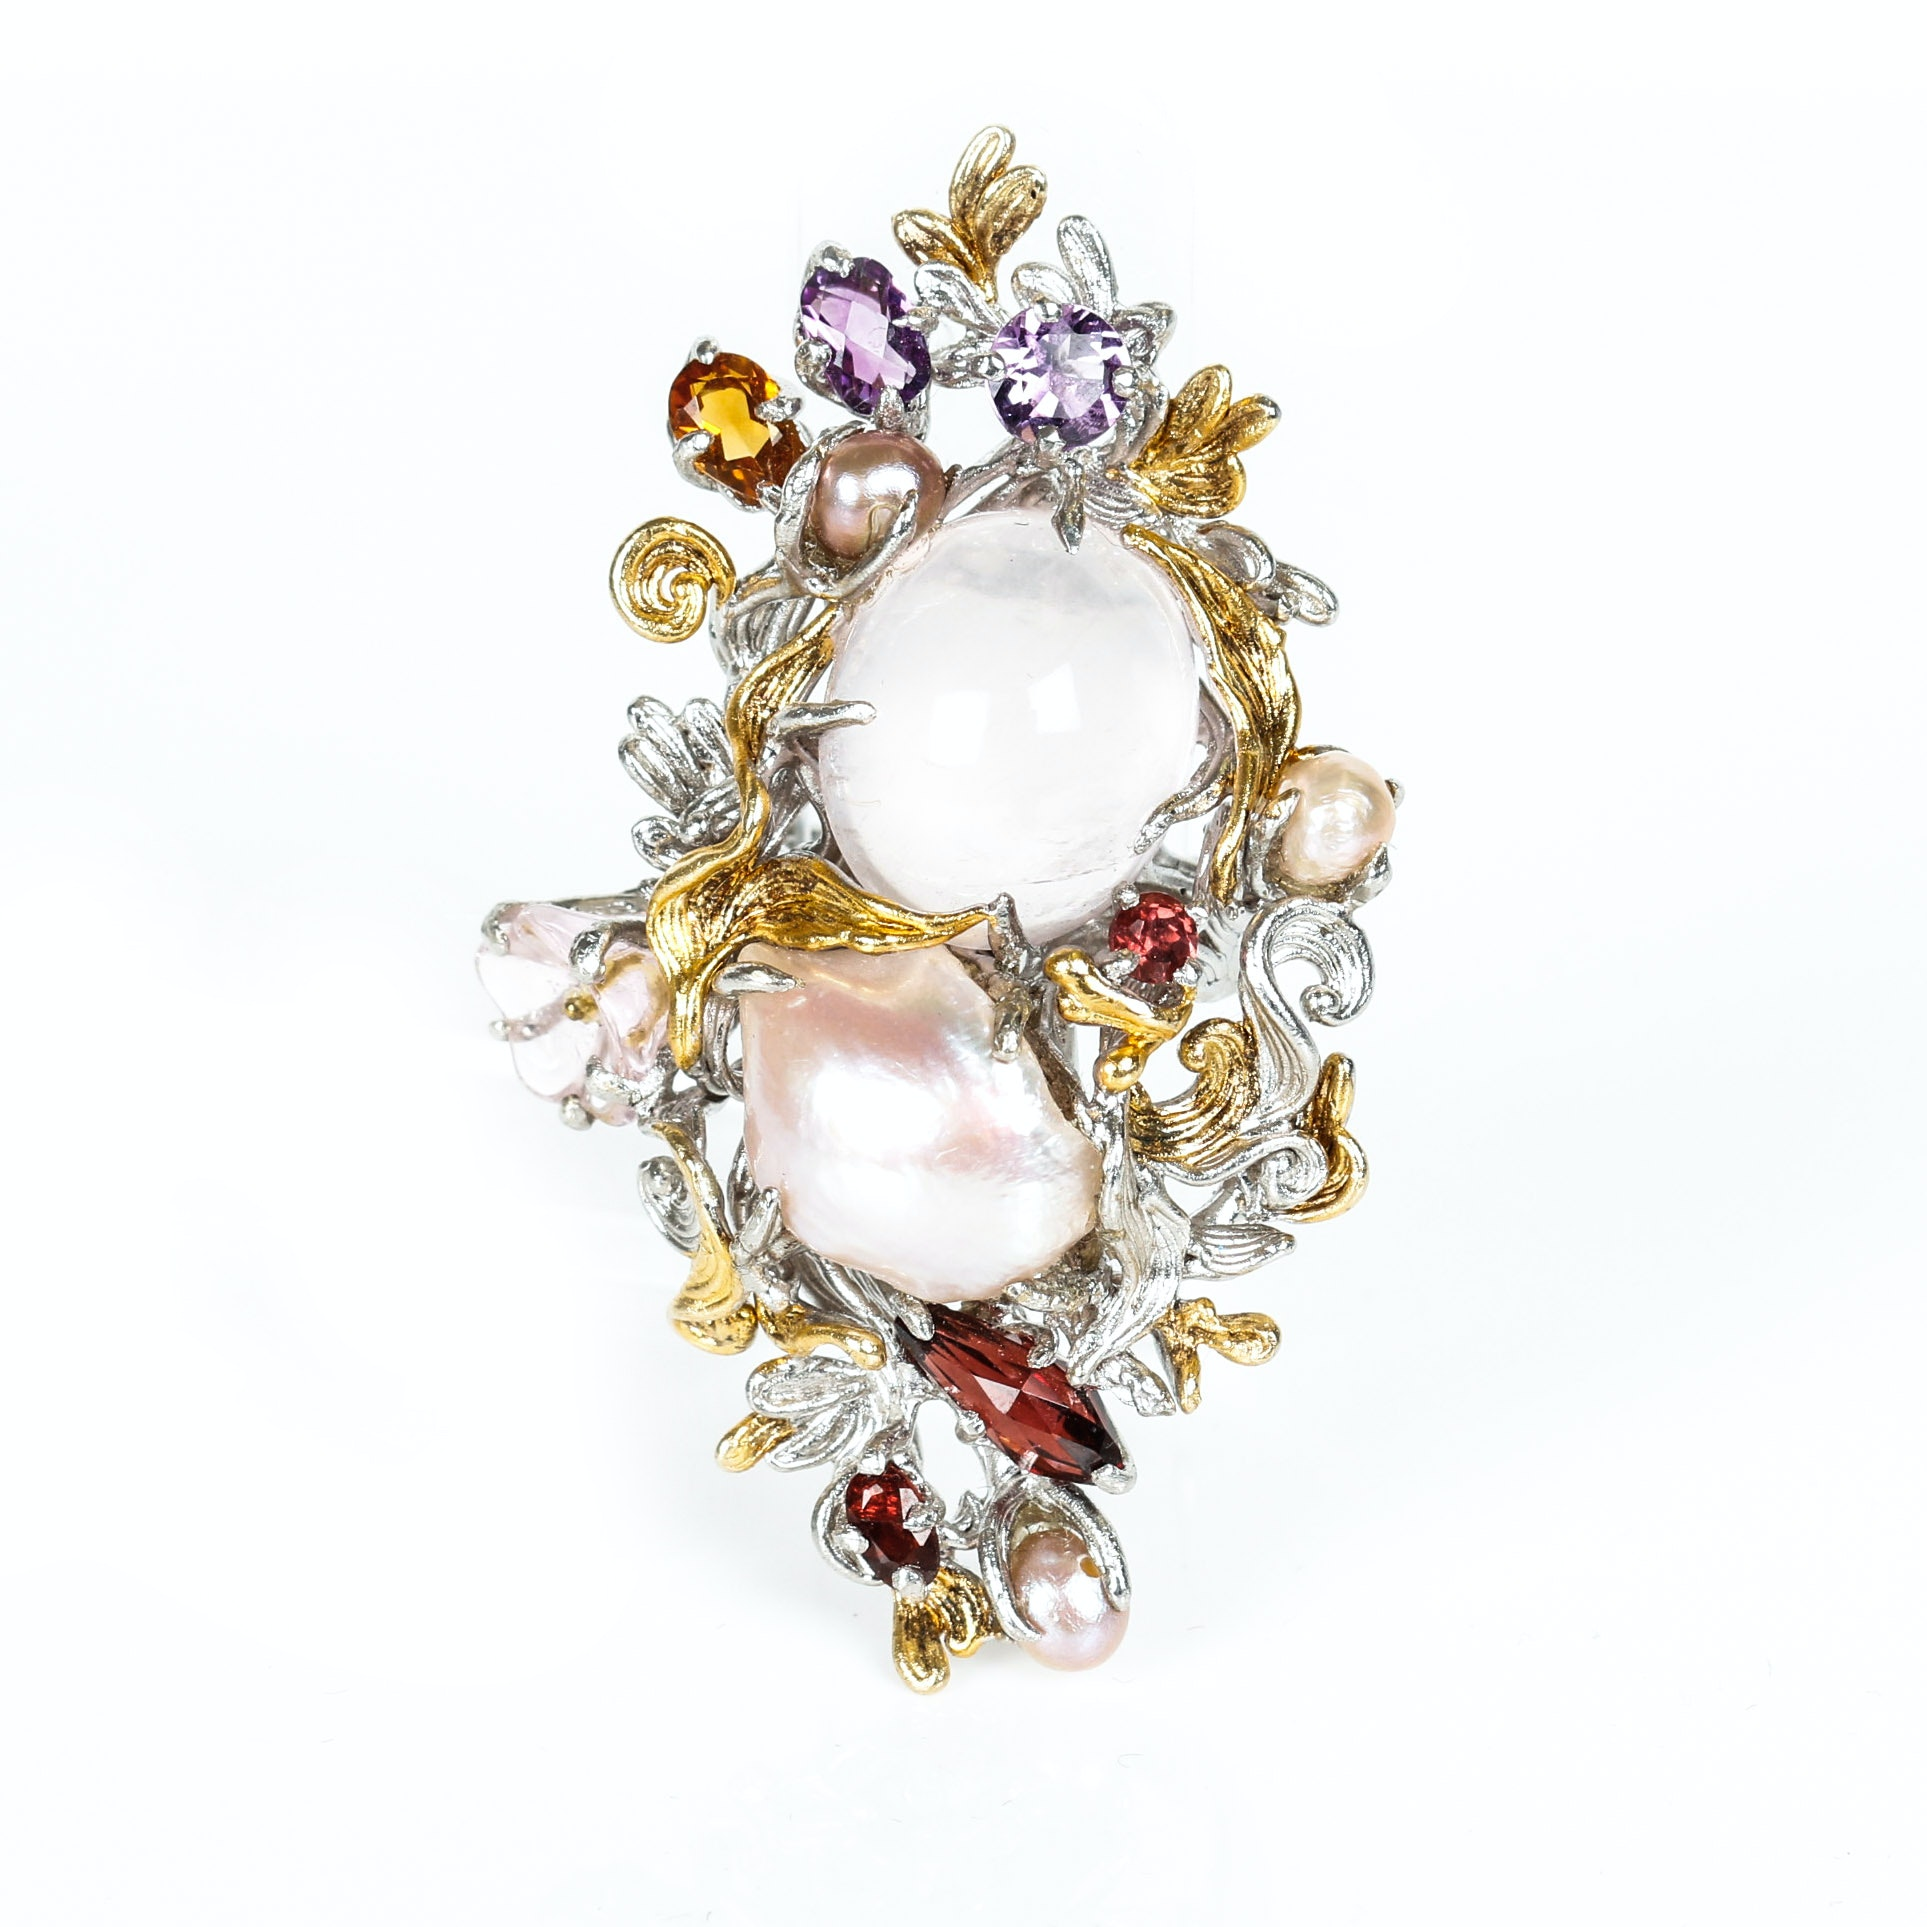 Joseph Holland Custom Multi-Stone, Freshwater Cultured Pearl, Sterling Silver and Vermeil Ring